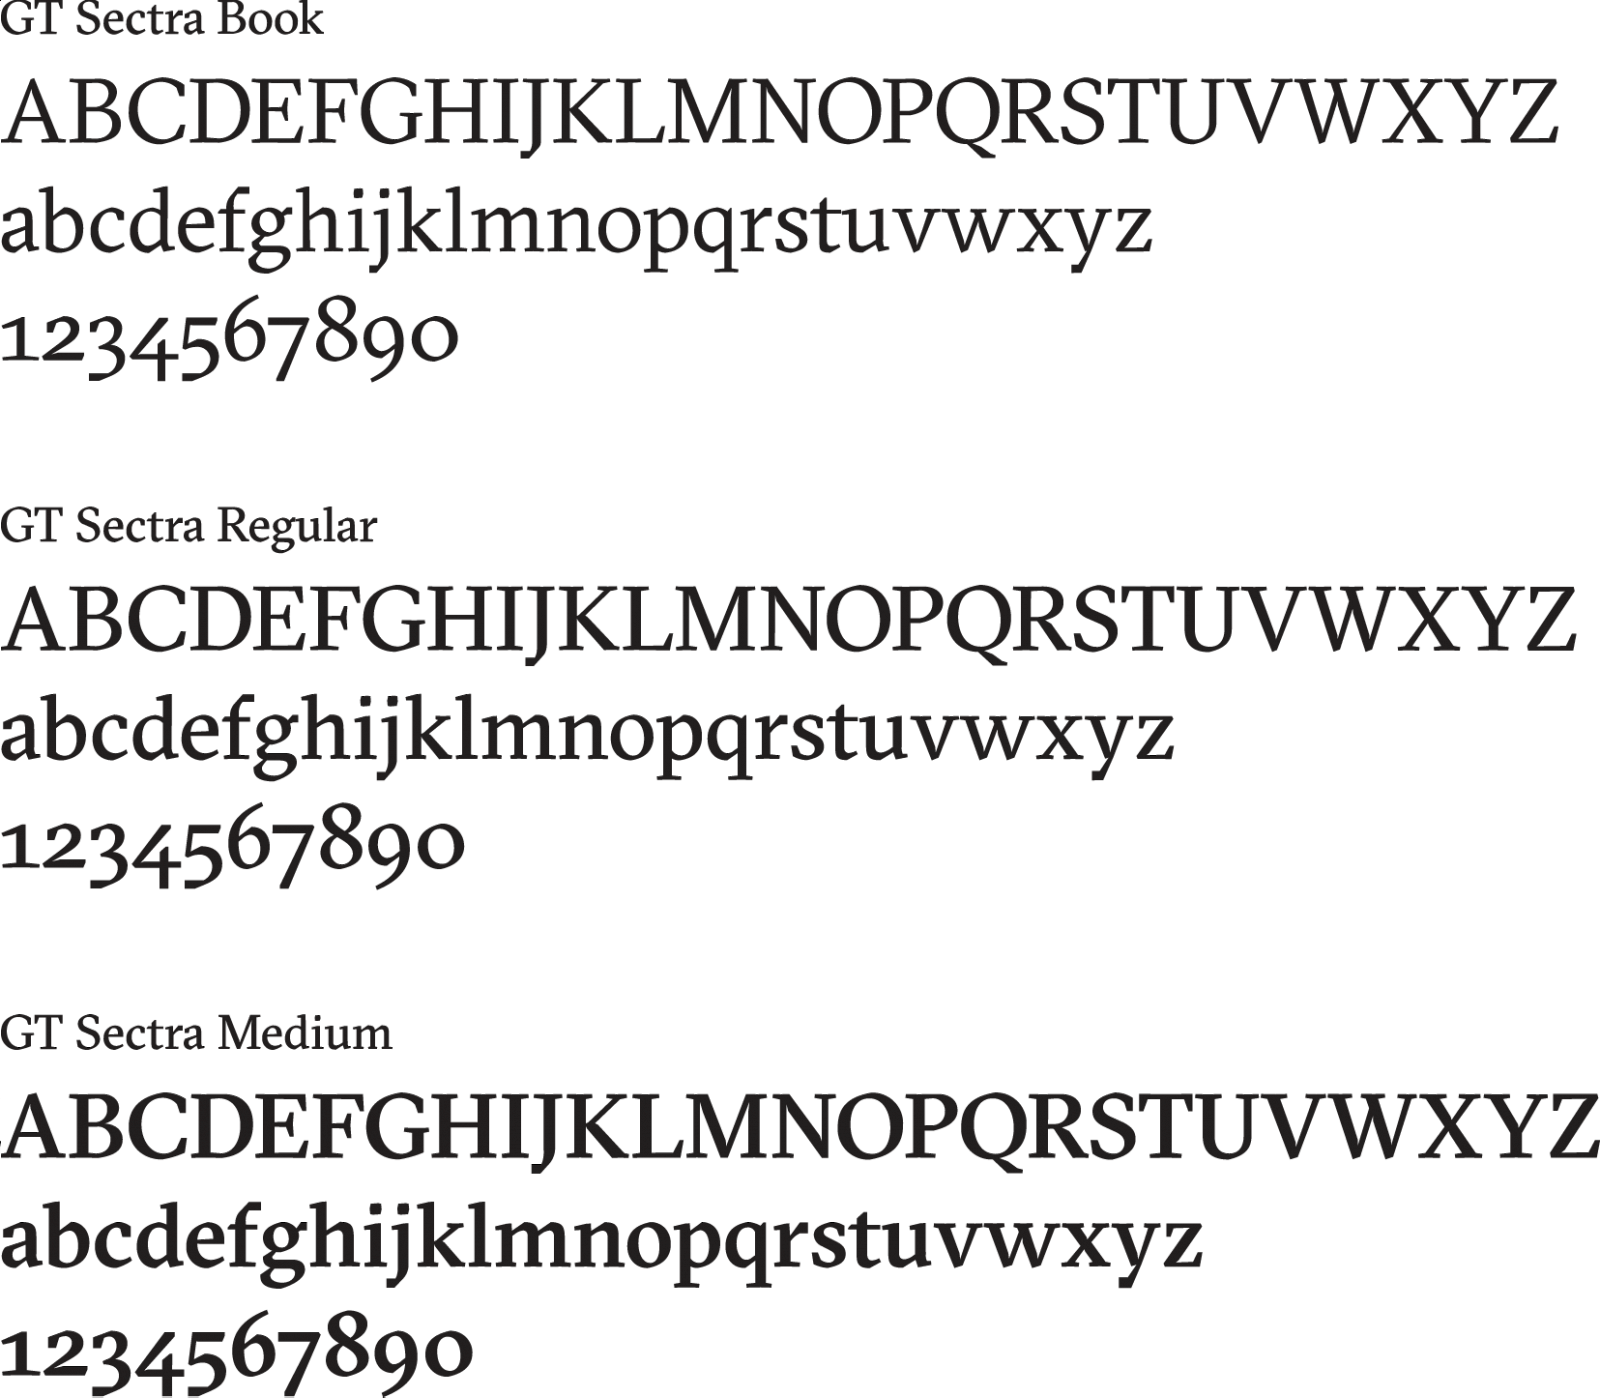 typography GT Sectra